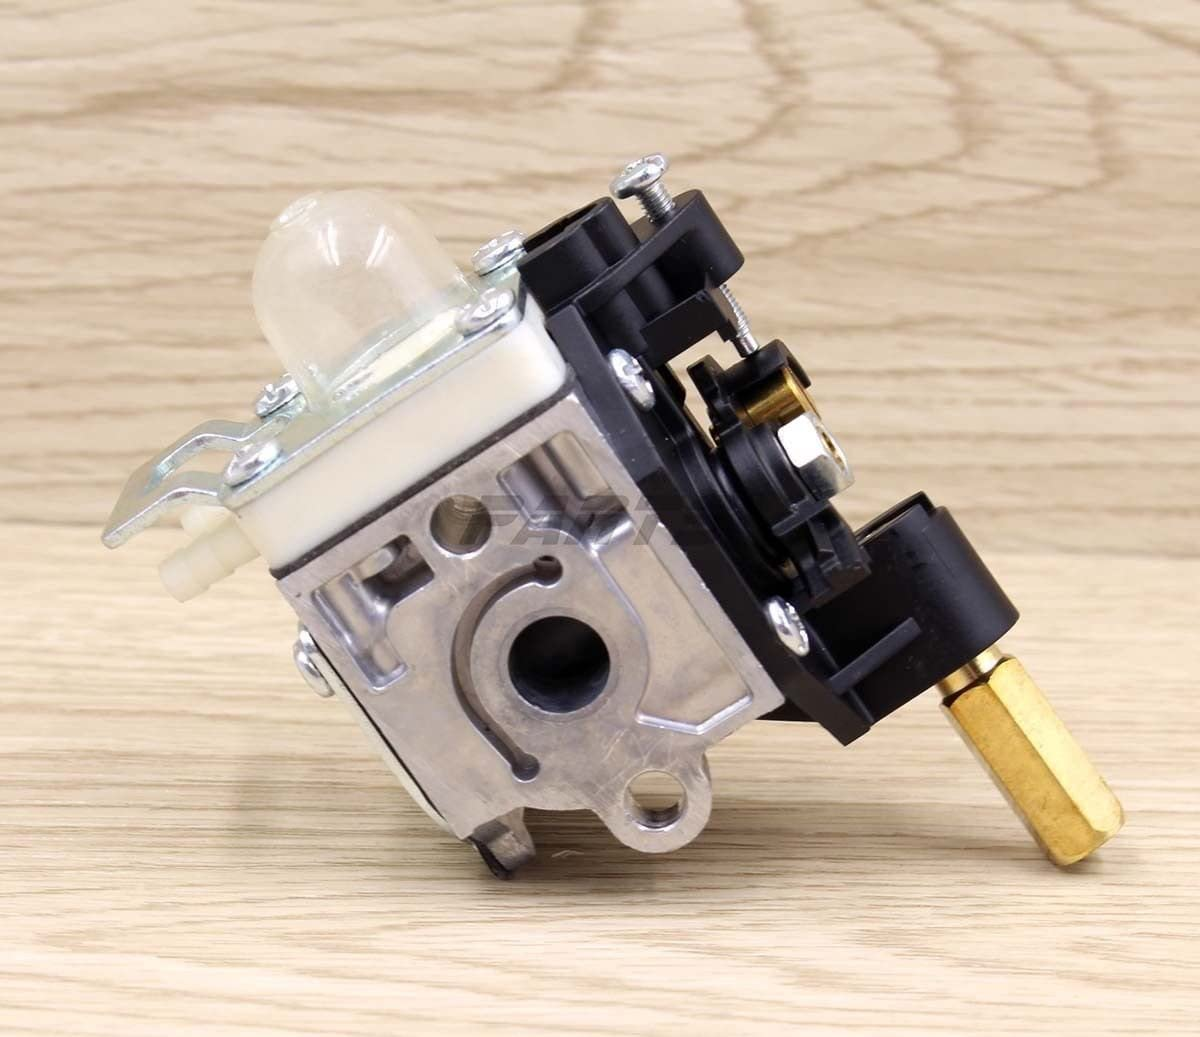 1 Carburetor Carb For Zama RB-K75 Replacement A021000740 A021000741 13001013410